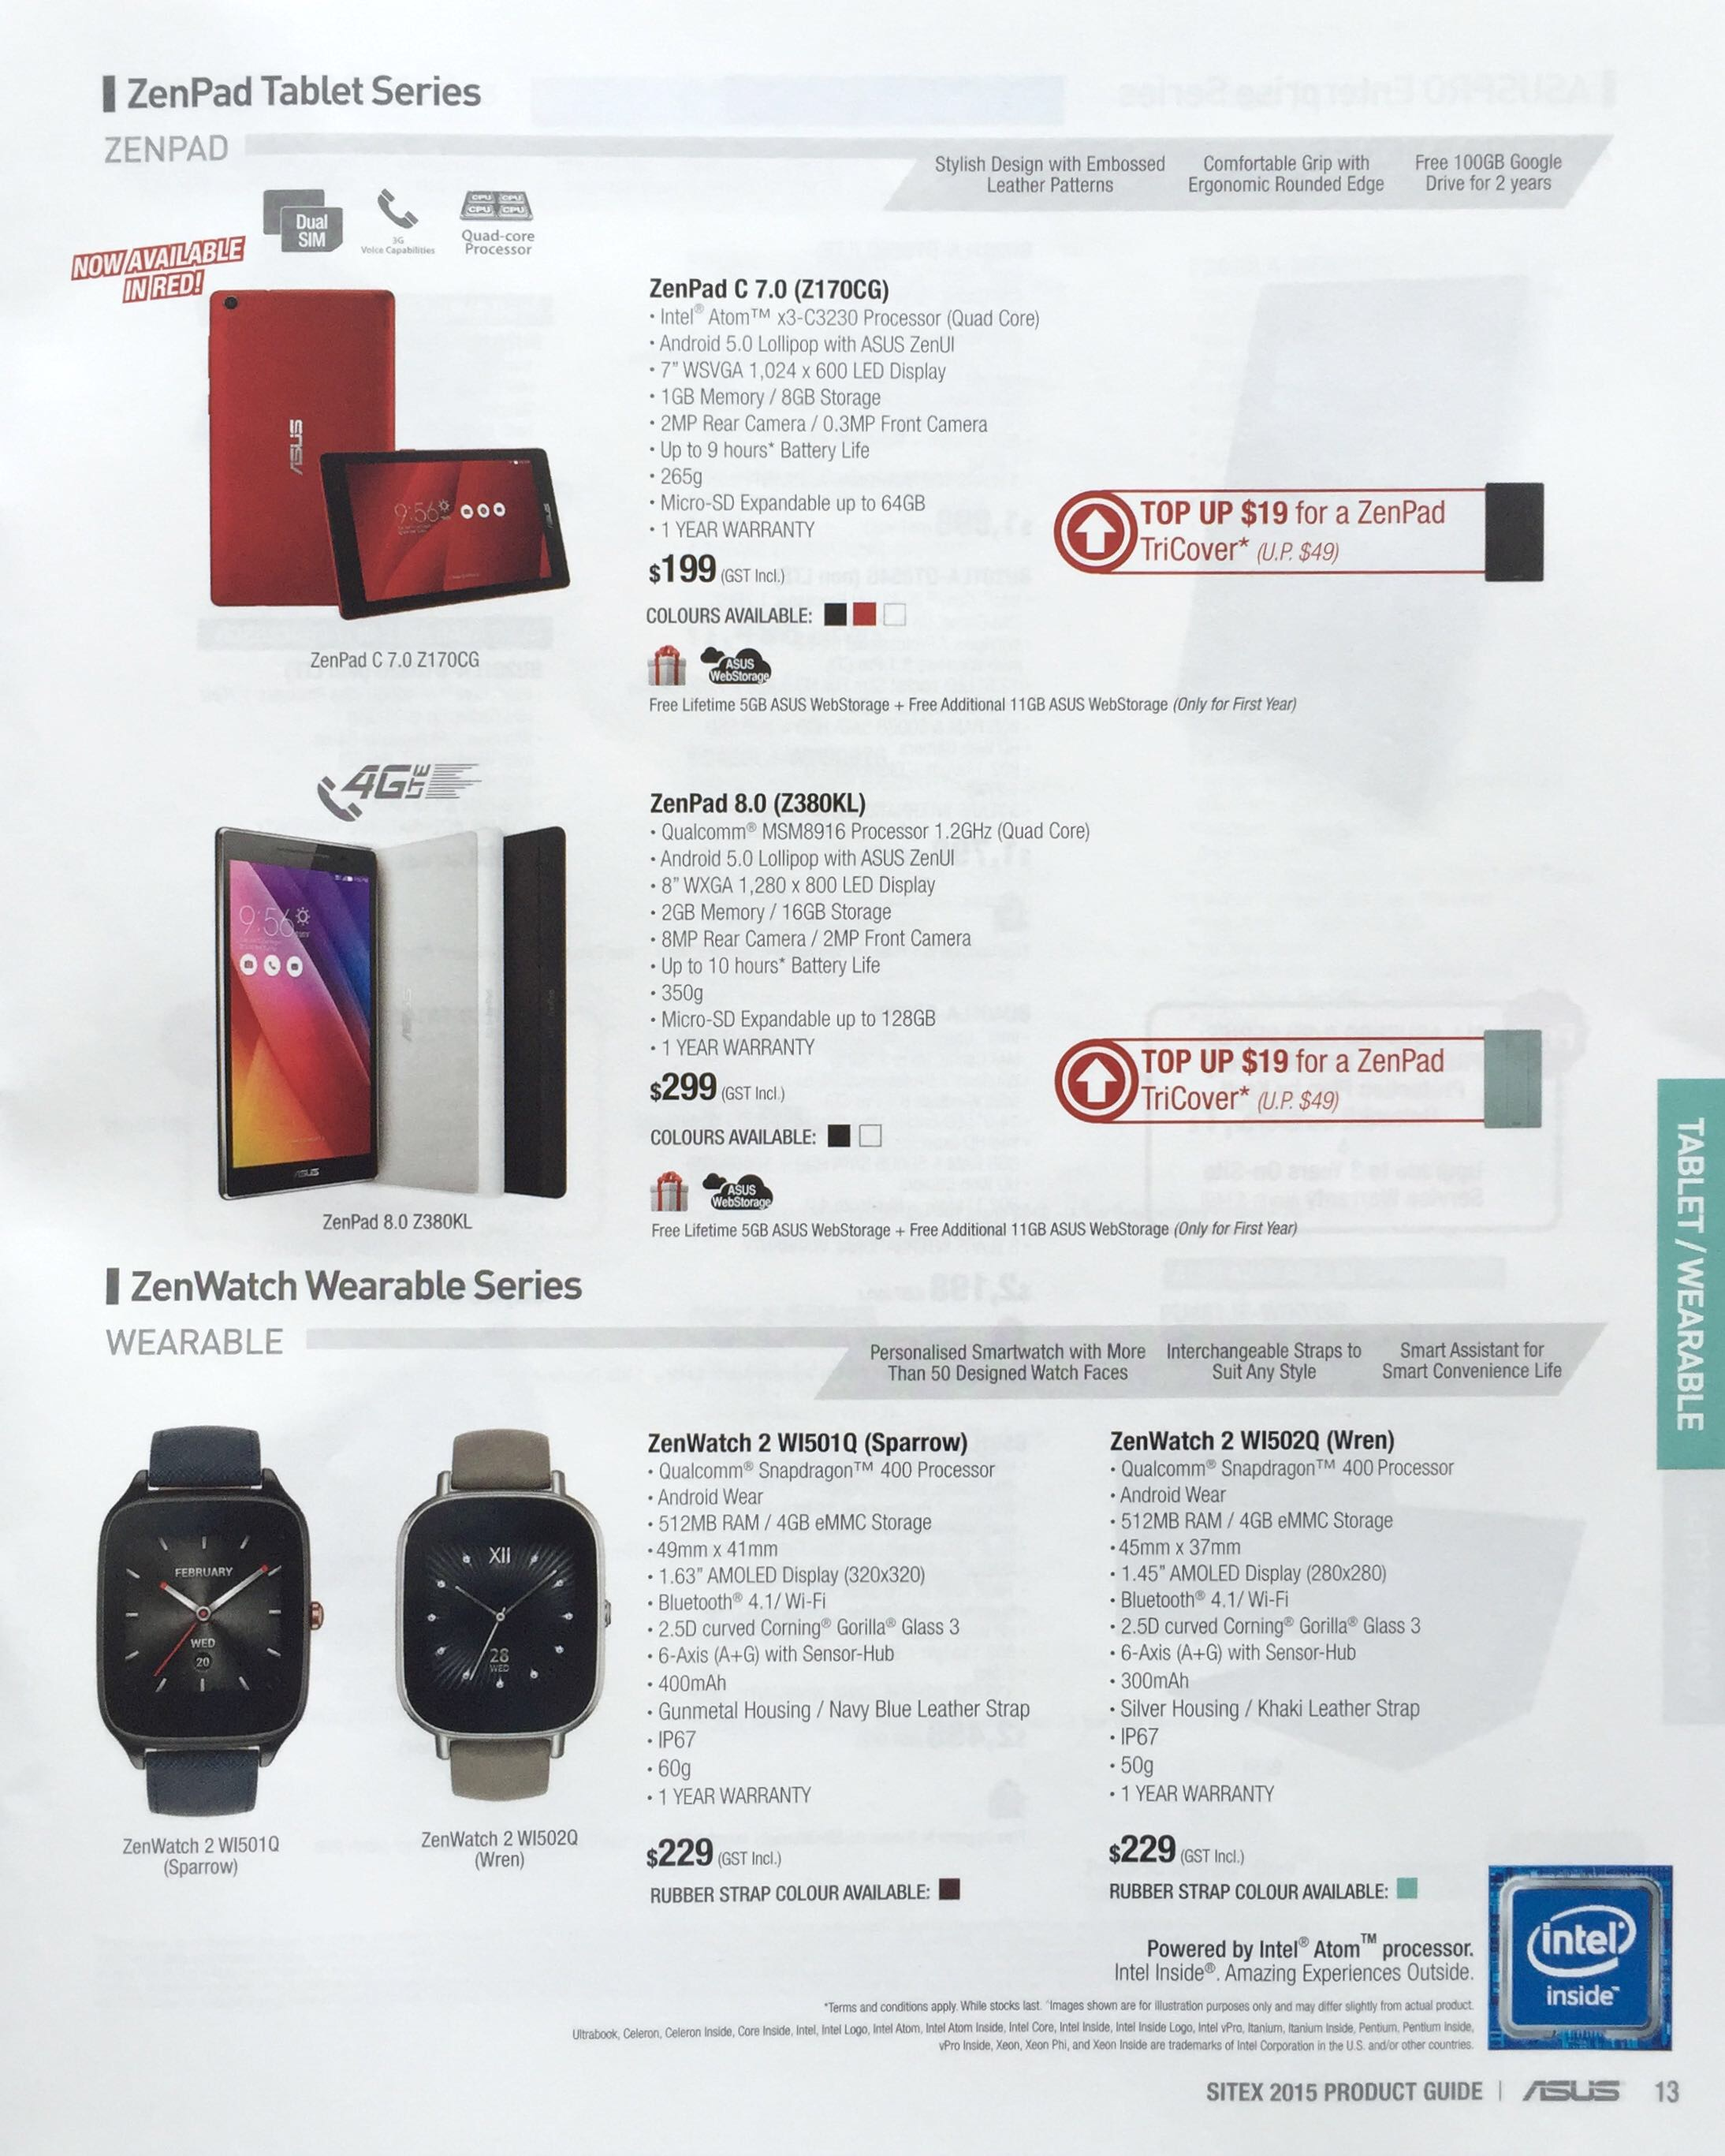 ASUS @ SITEX 2015 - ZenPad Tablet Series and ZenWatch Wearable Series